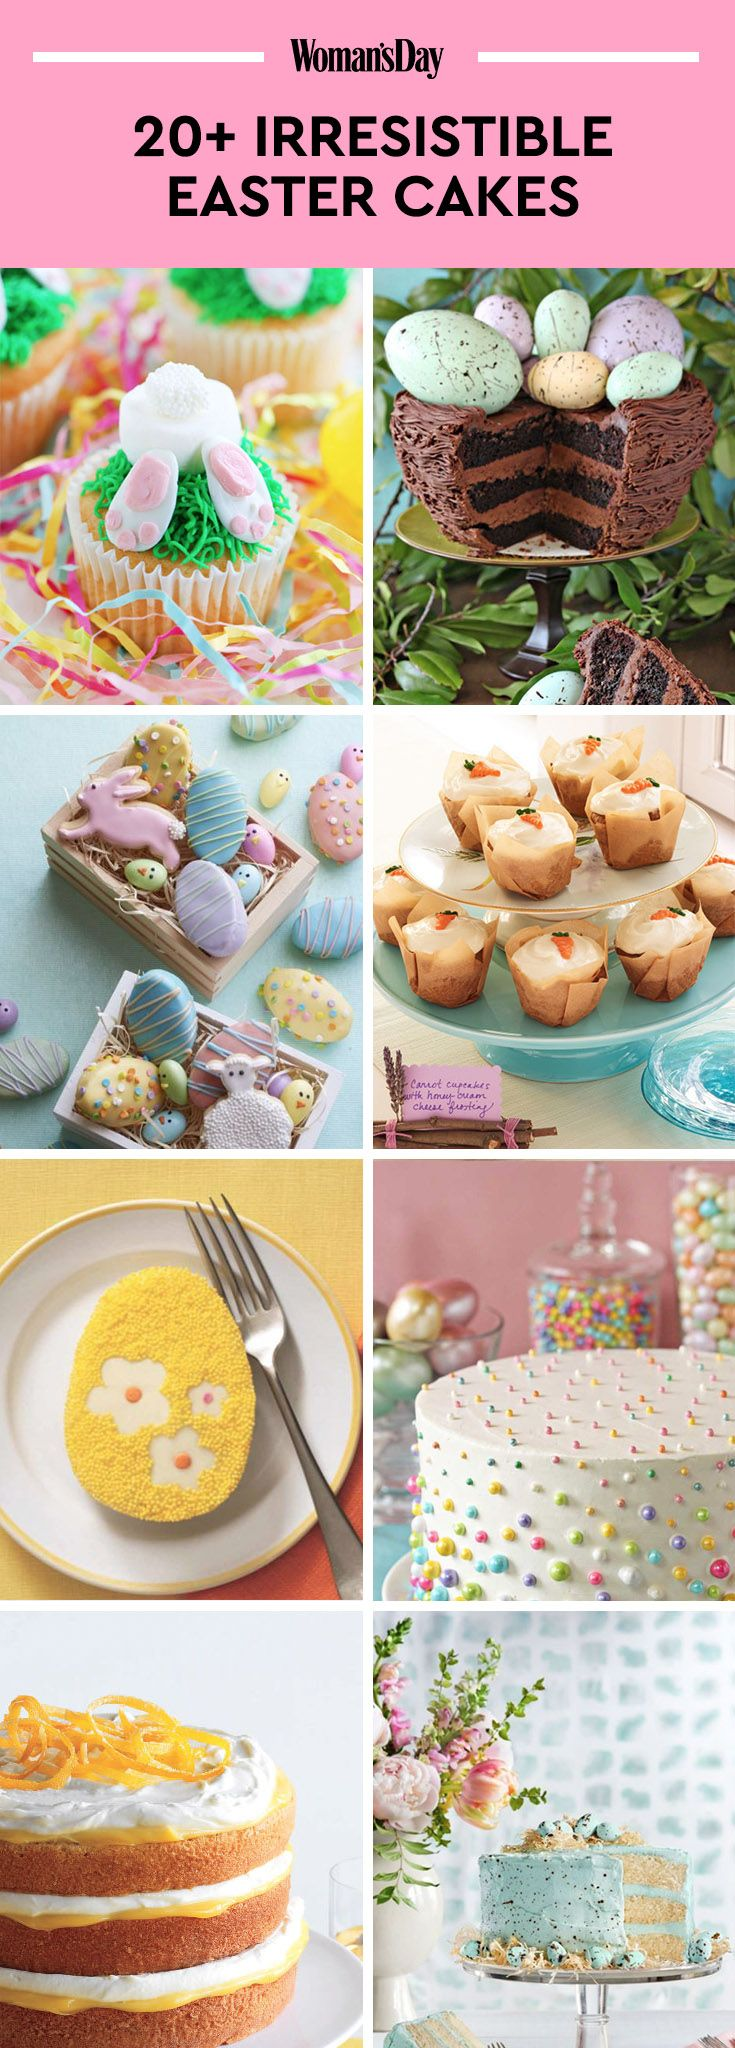 37 Best Easter Cakes Ideas And Recipes For Cute Easter Cakes